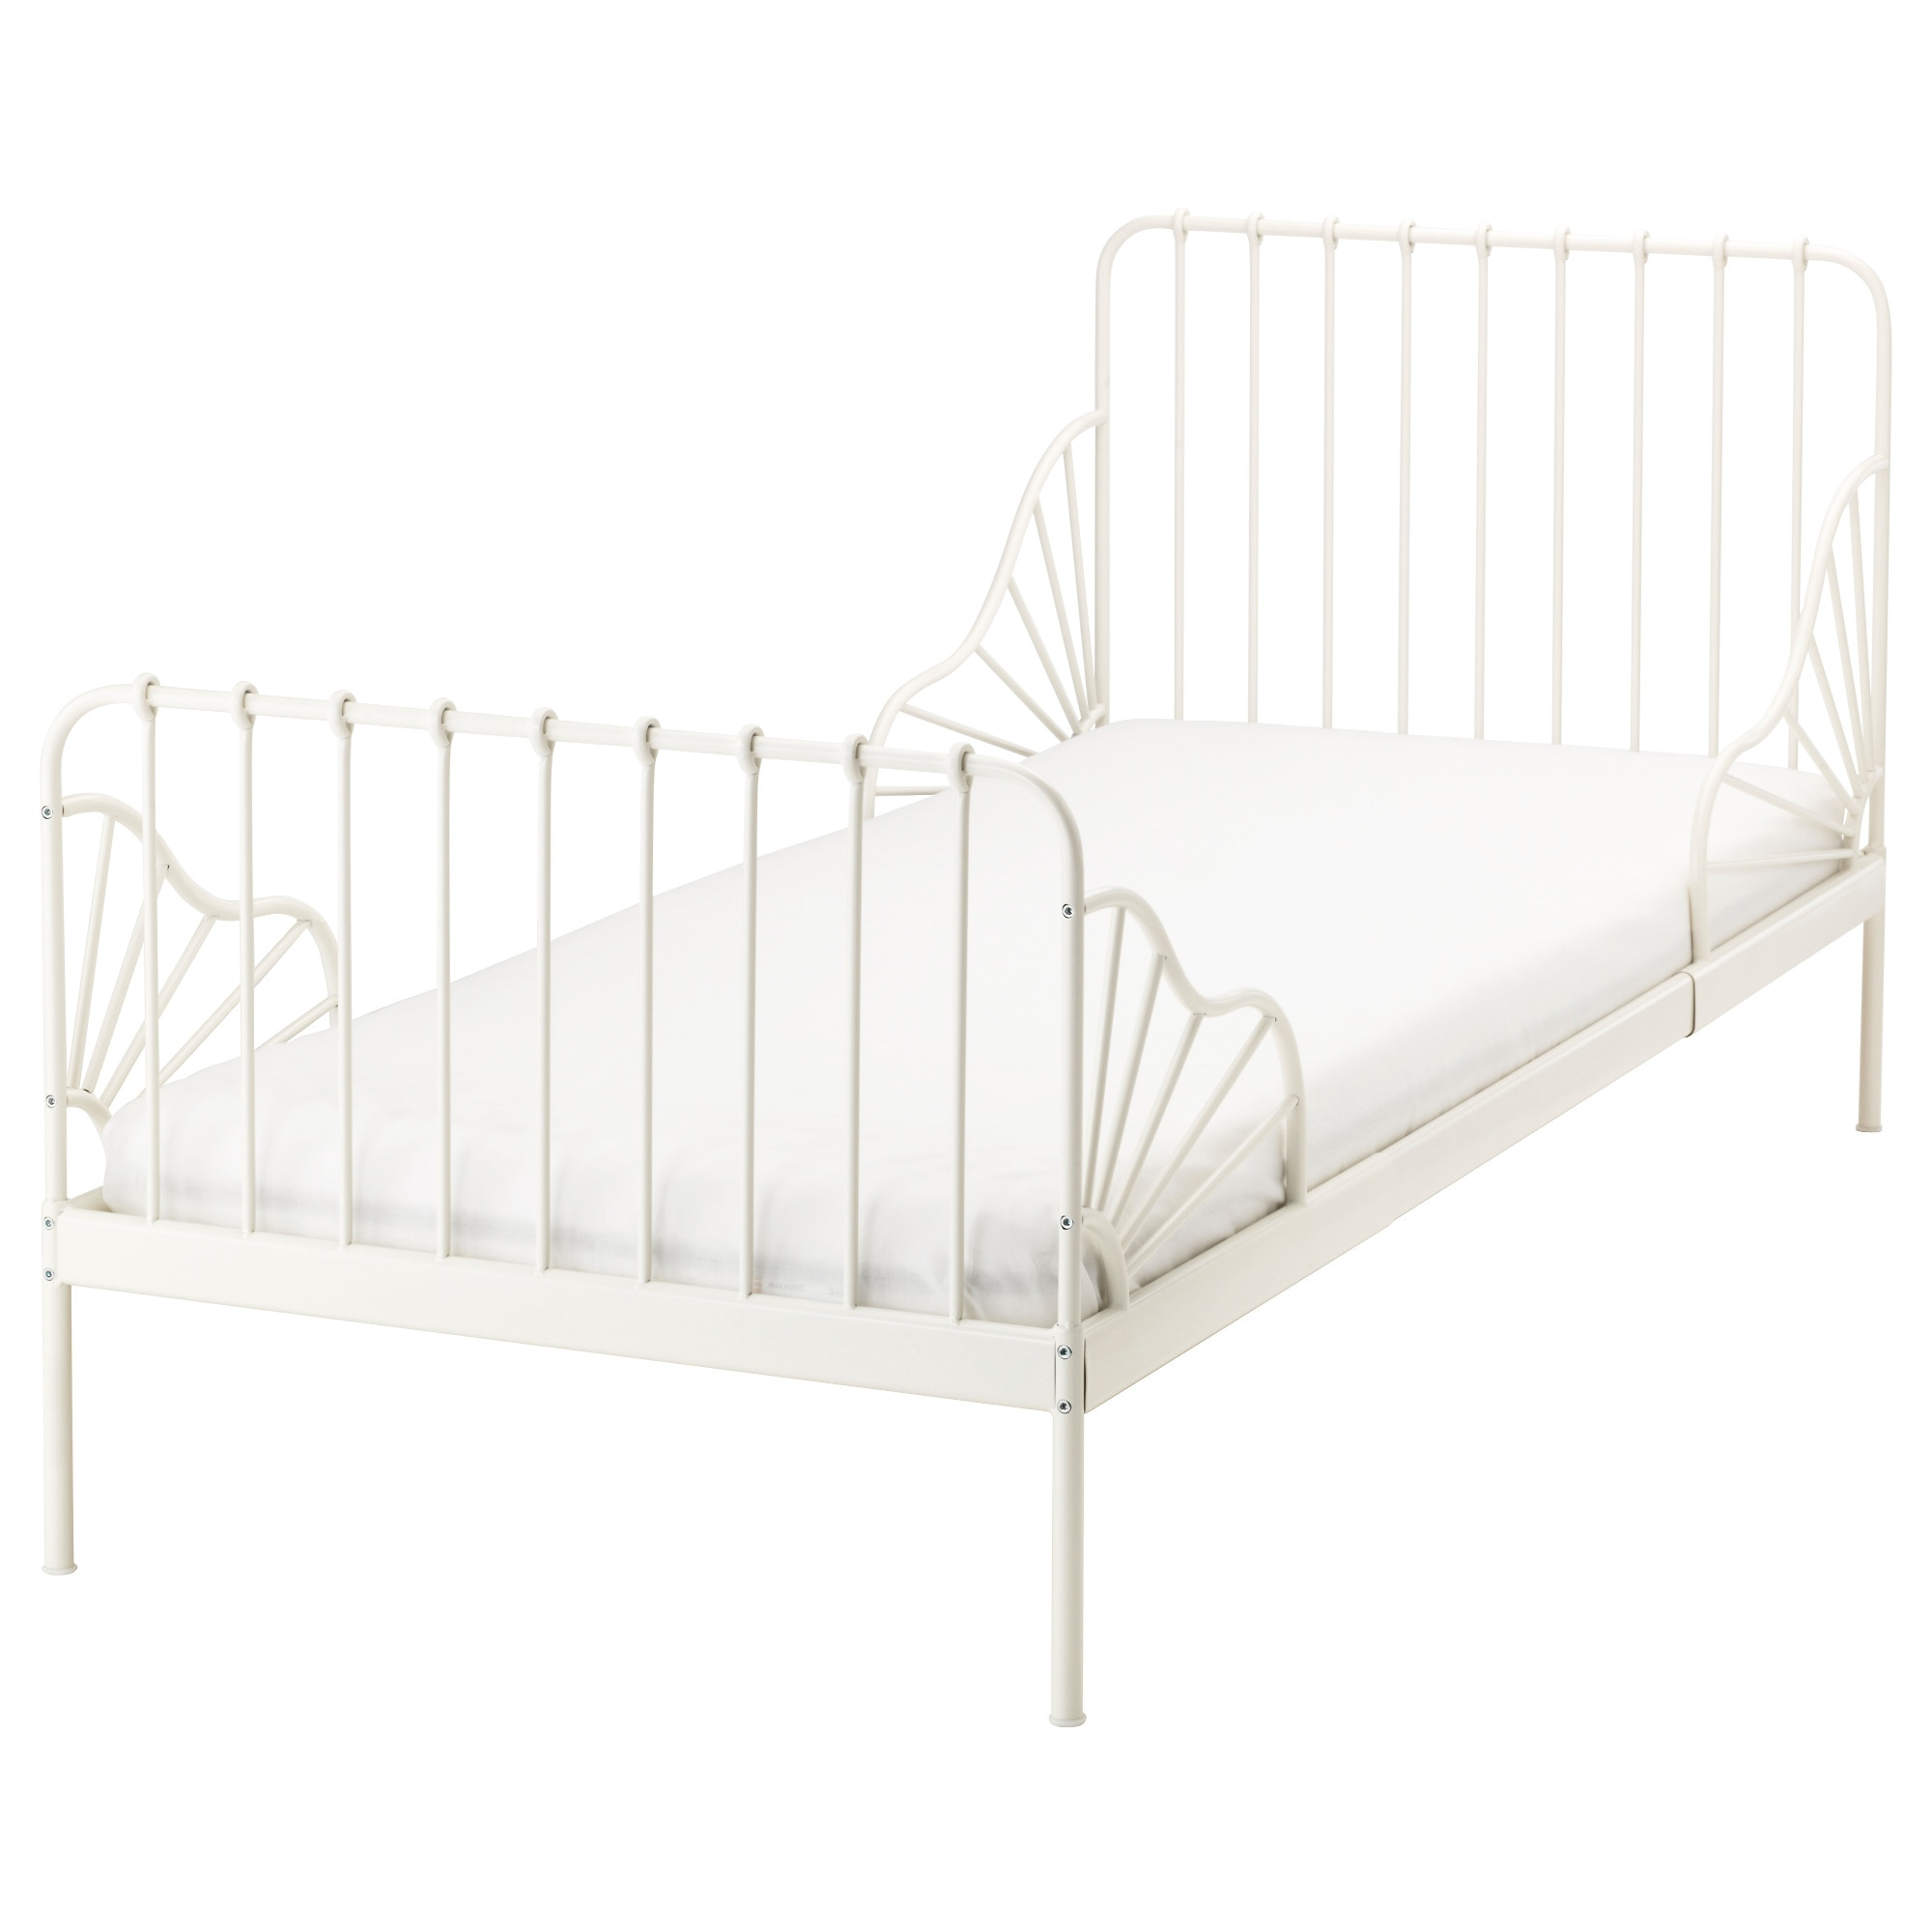 minnen ext bed frame with slatted bed base white min length 49 1